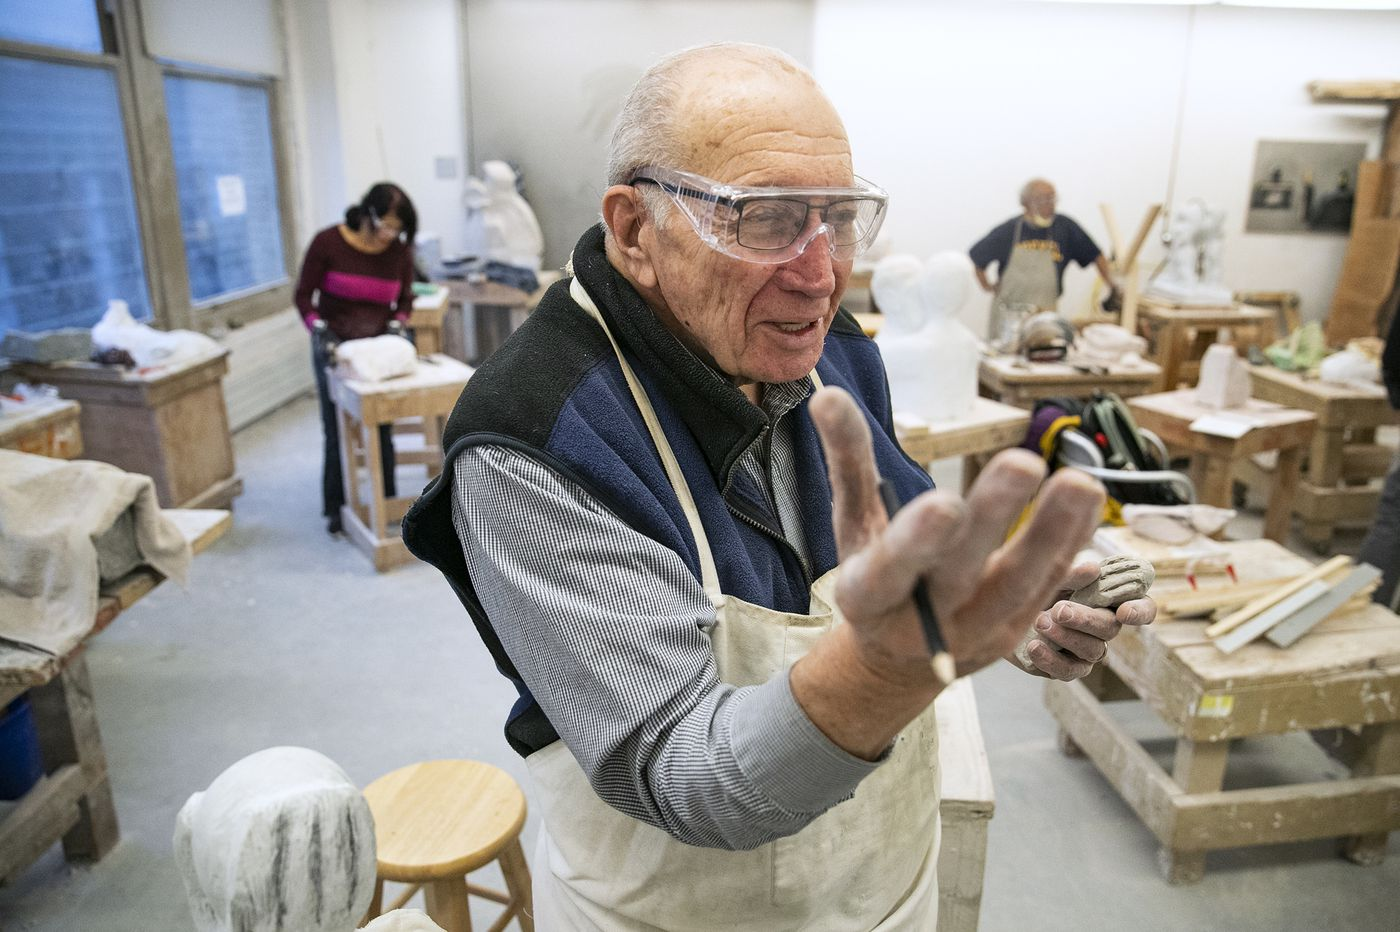 At 87, this Philly physician to spinal cord injury patients finds hope in sculpting